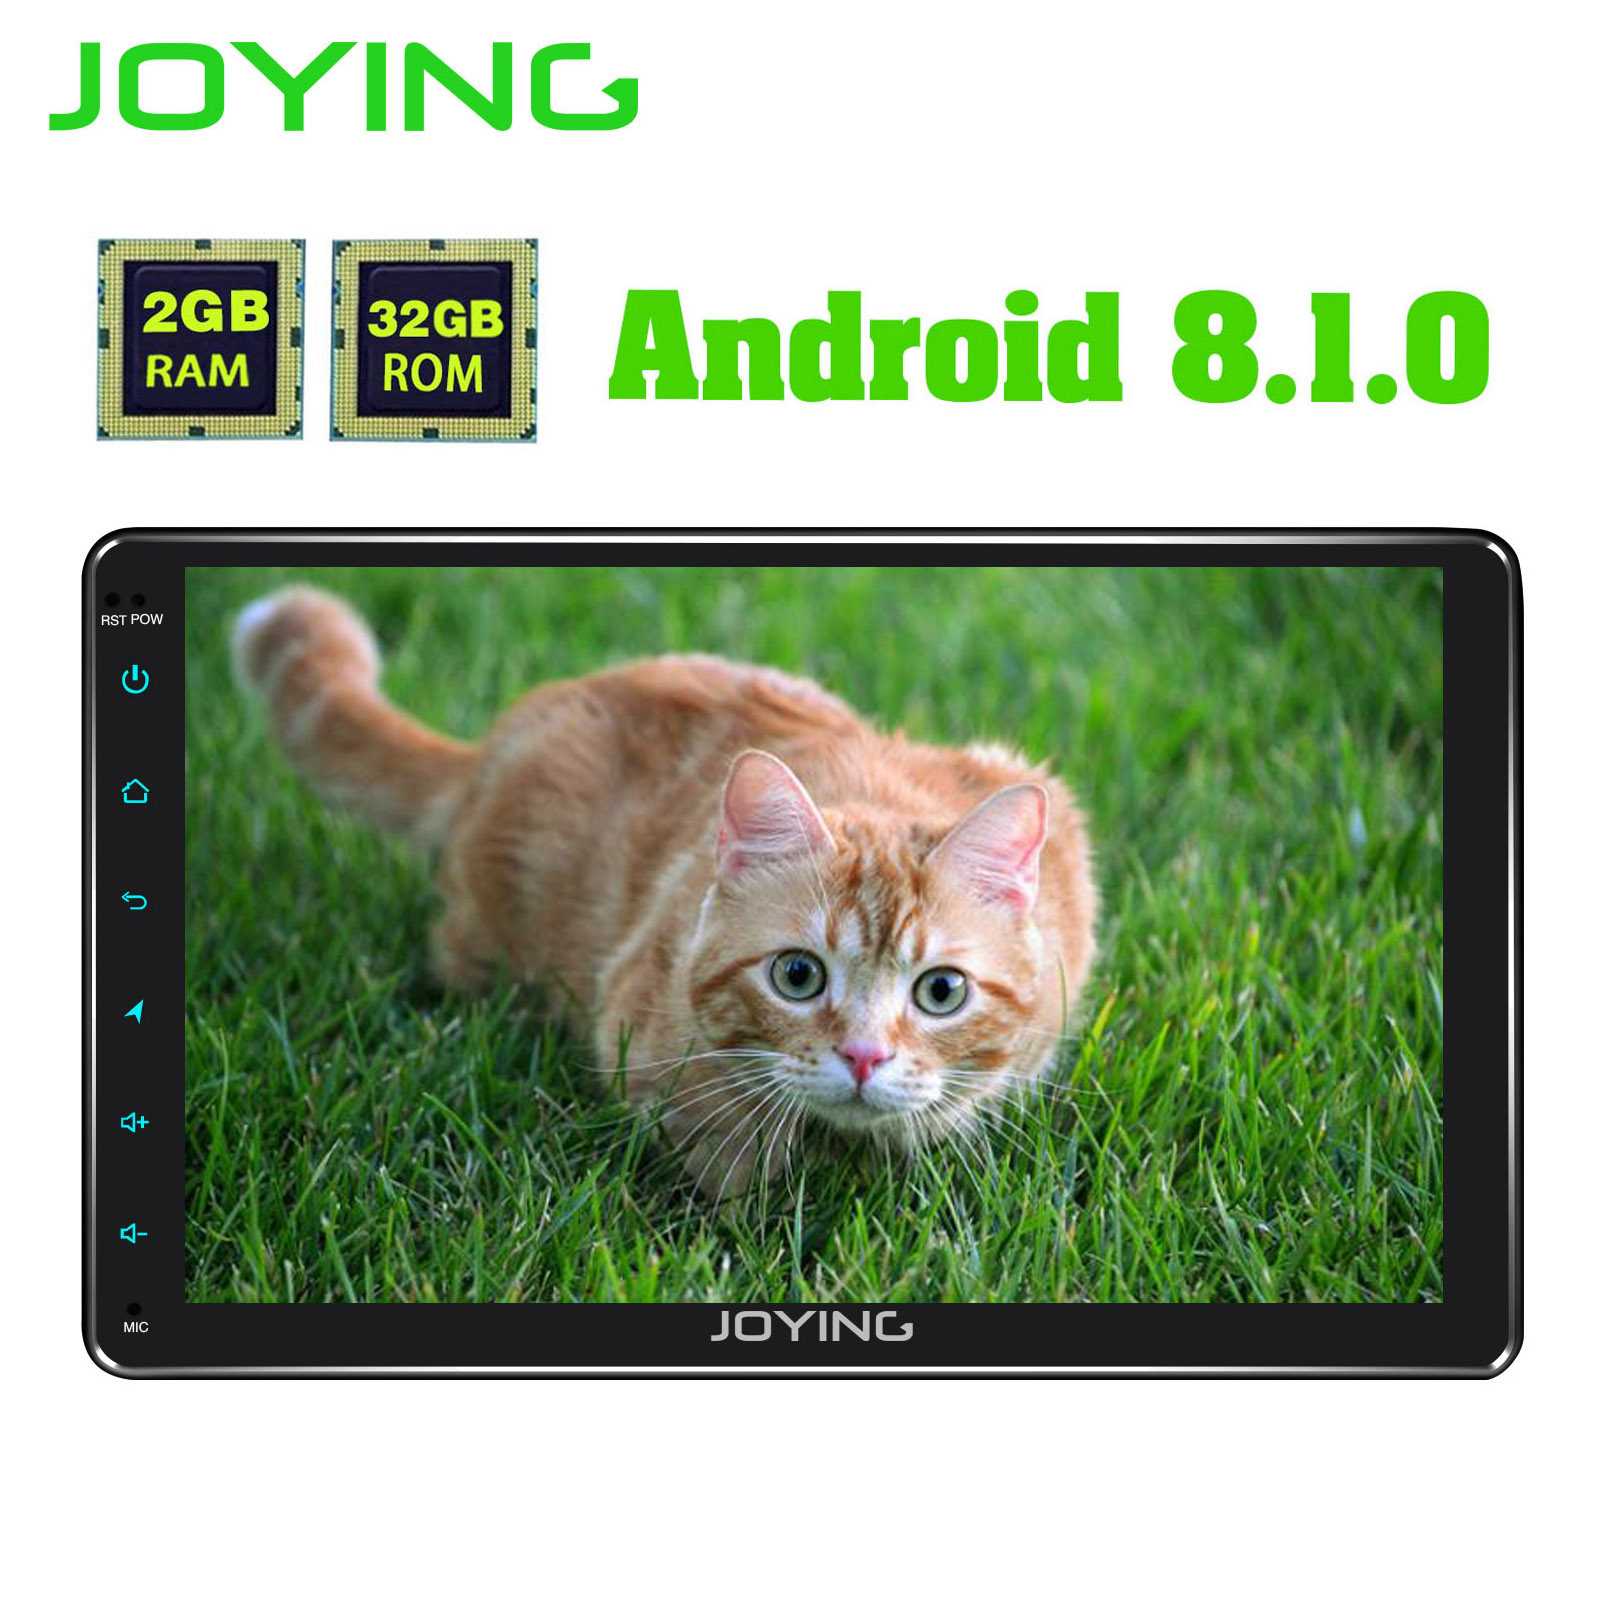 JOYING 9'' 1 din Car Radio 2g Ram 32g Rom Android 8.1 Octa Core Universal head unit GPS system with DSP support Mirror Link Wifi